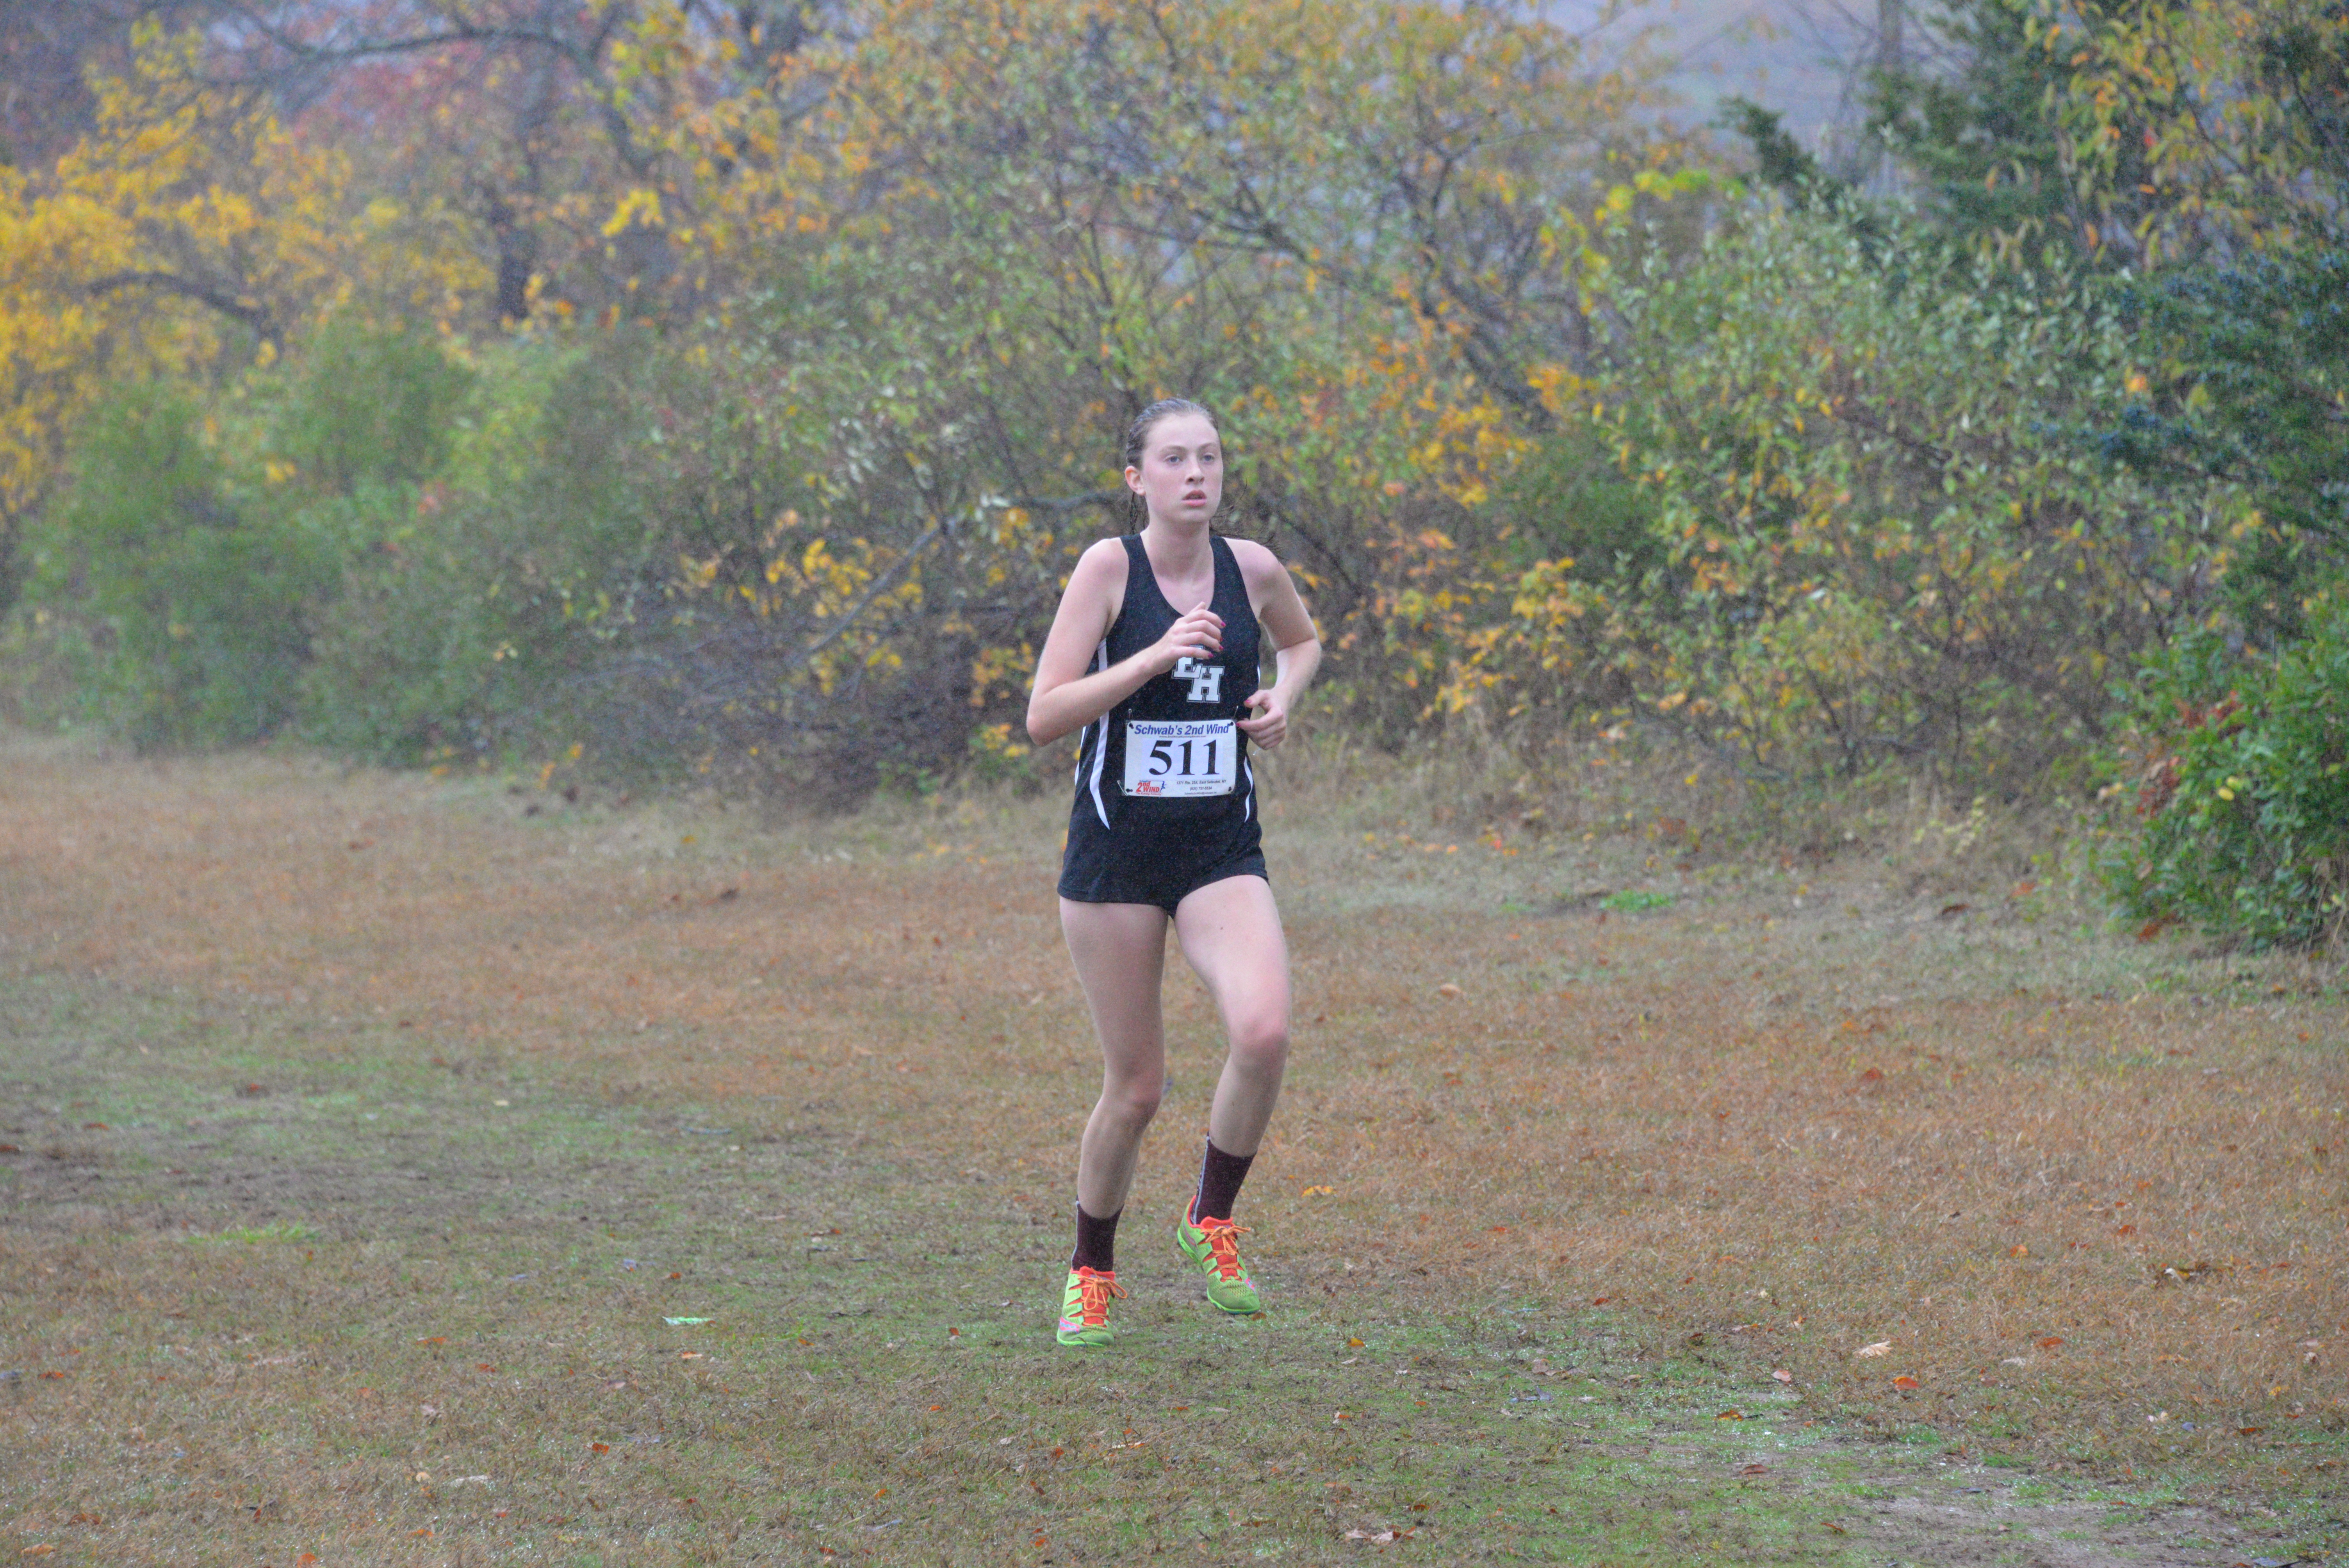 East Hampton junior Ava Engstrom was under the weather at last week's division meet but still put forth a good effort and was the second Lady Bonacker to finish the race.